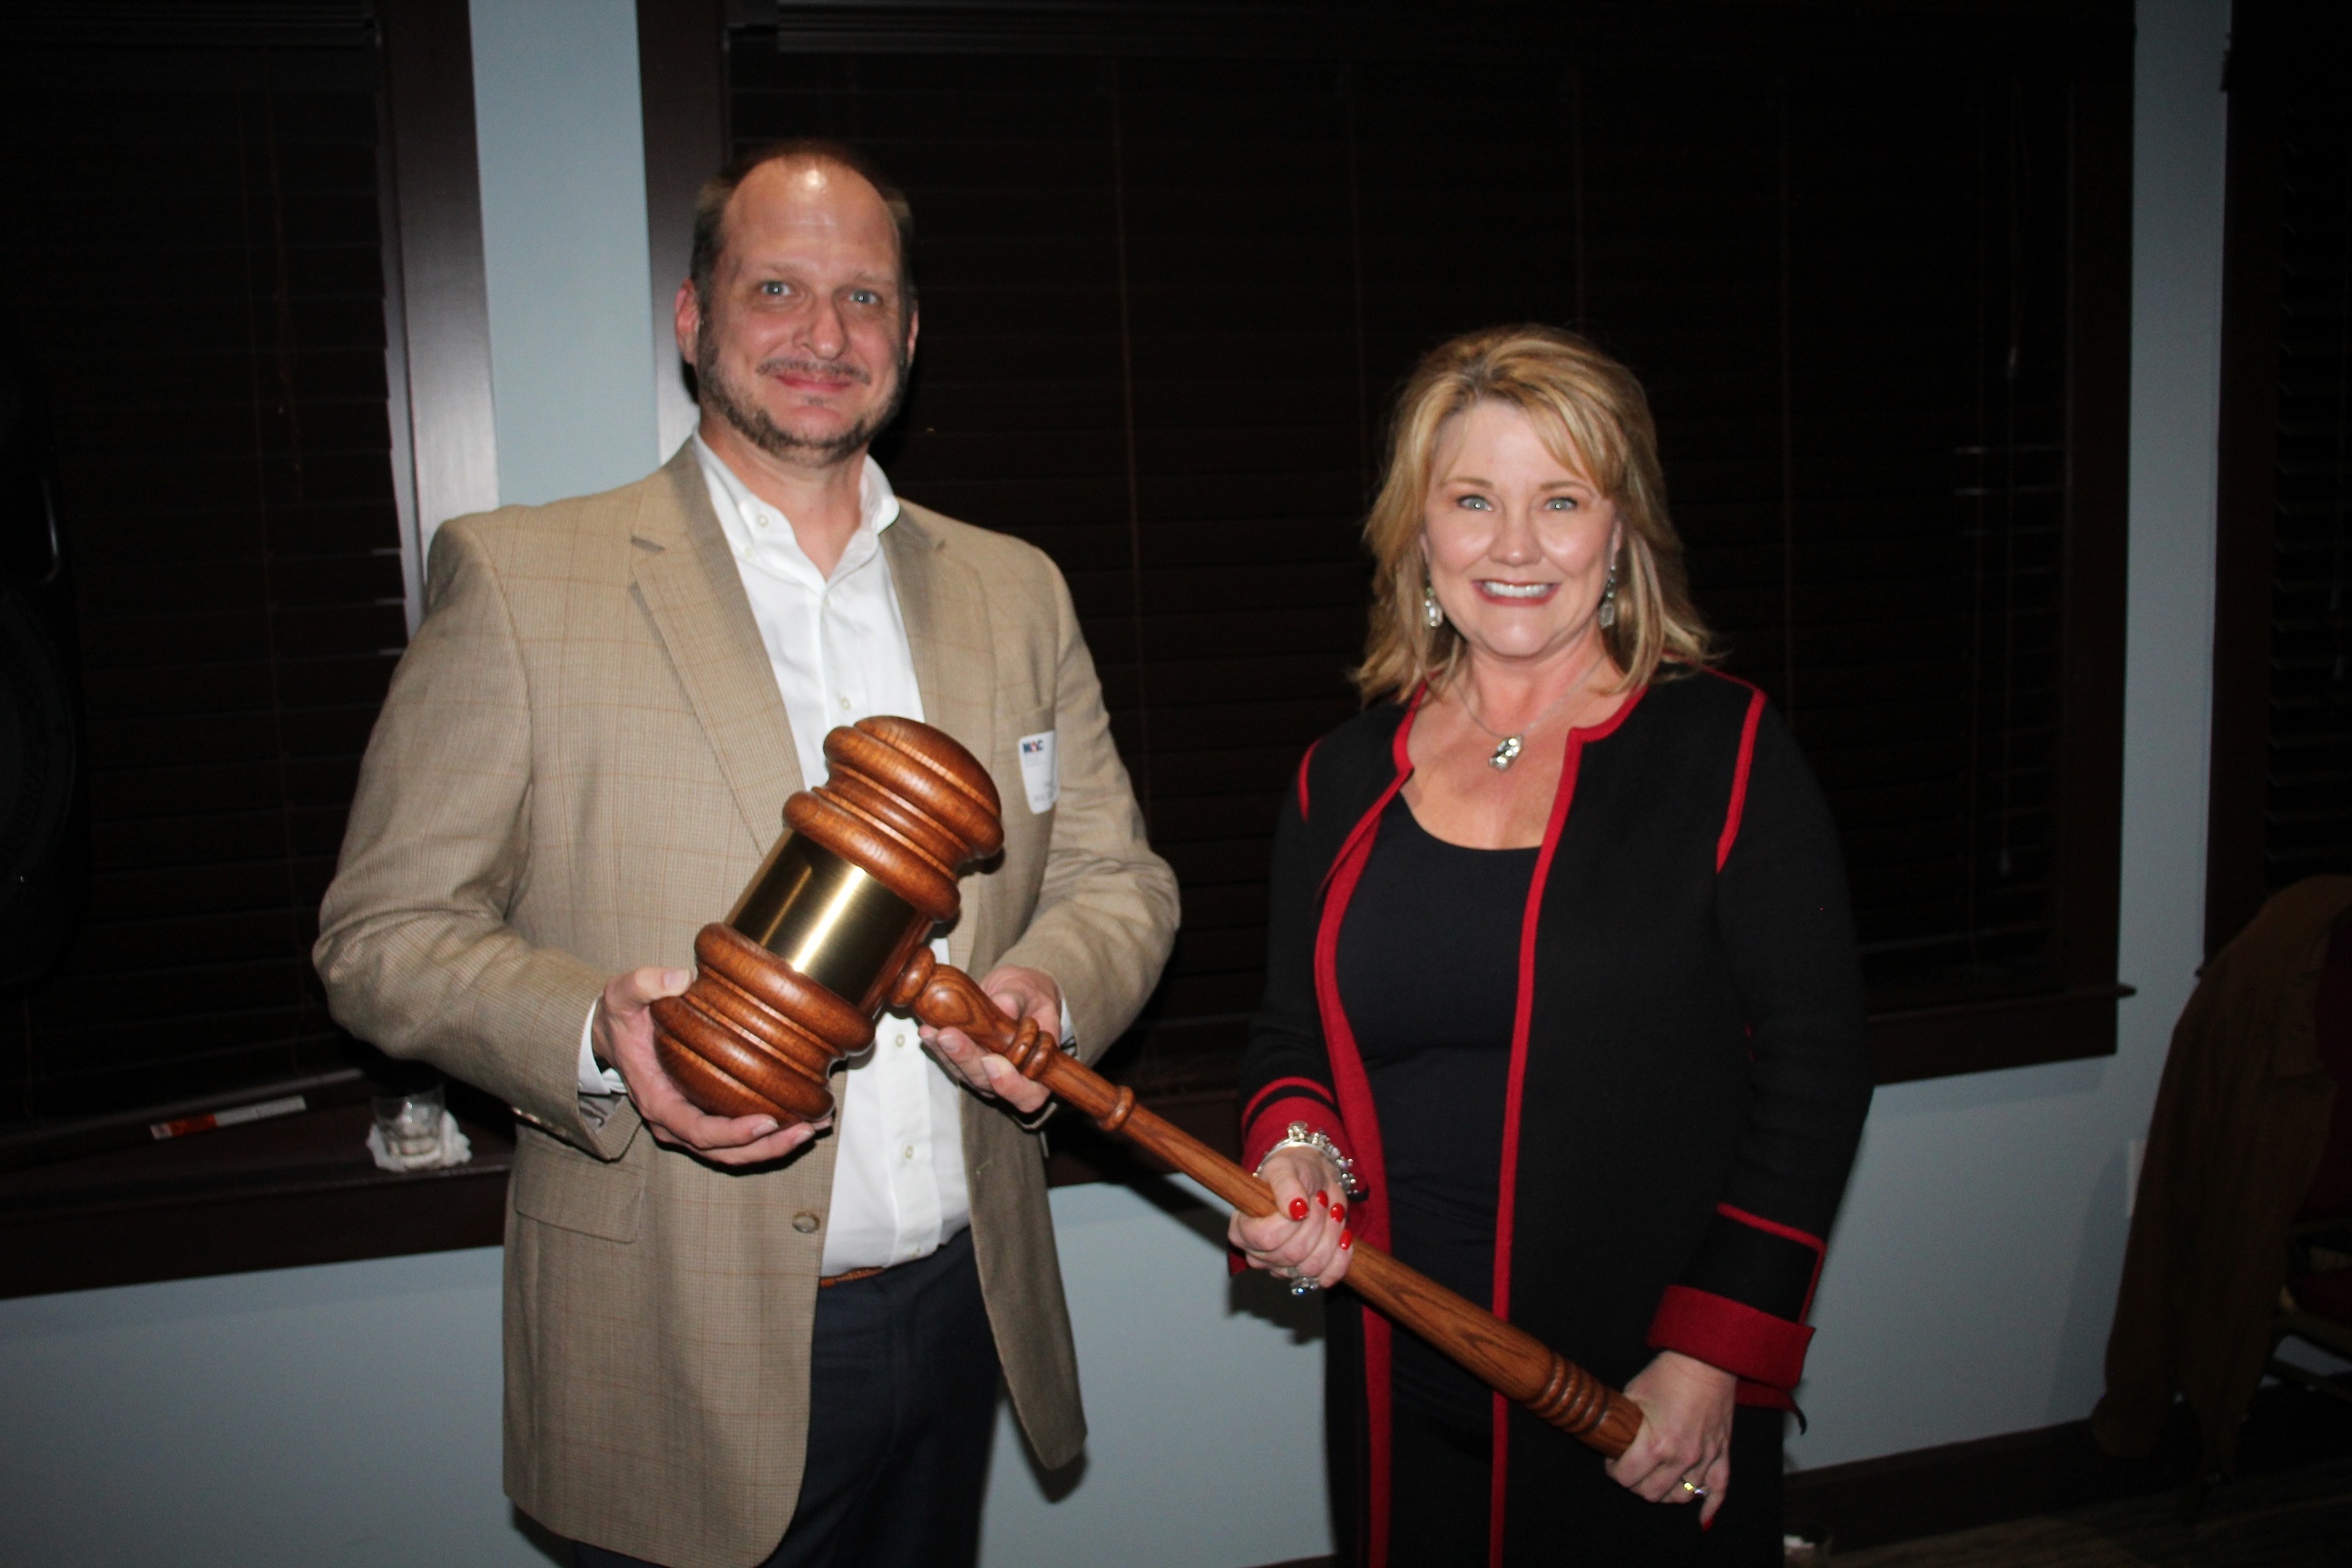 2018 MAC Chair Claire Sherman passes the gavel to 2019 MAC Chair Doug Moore.